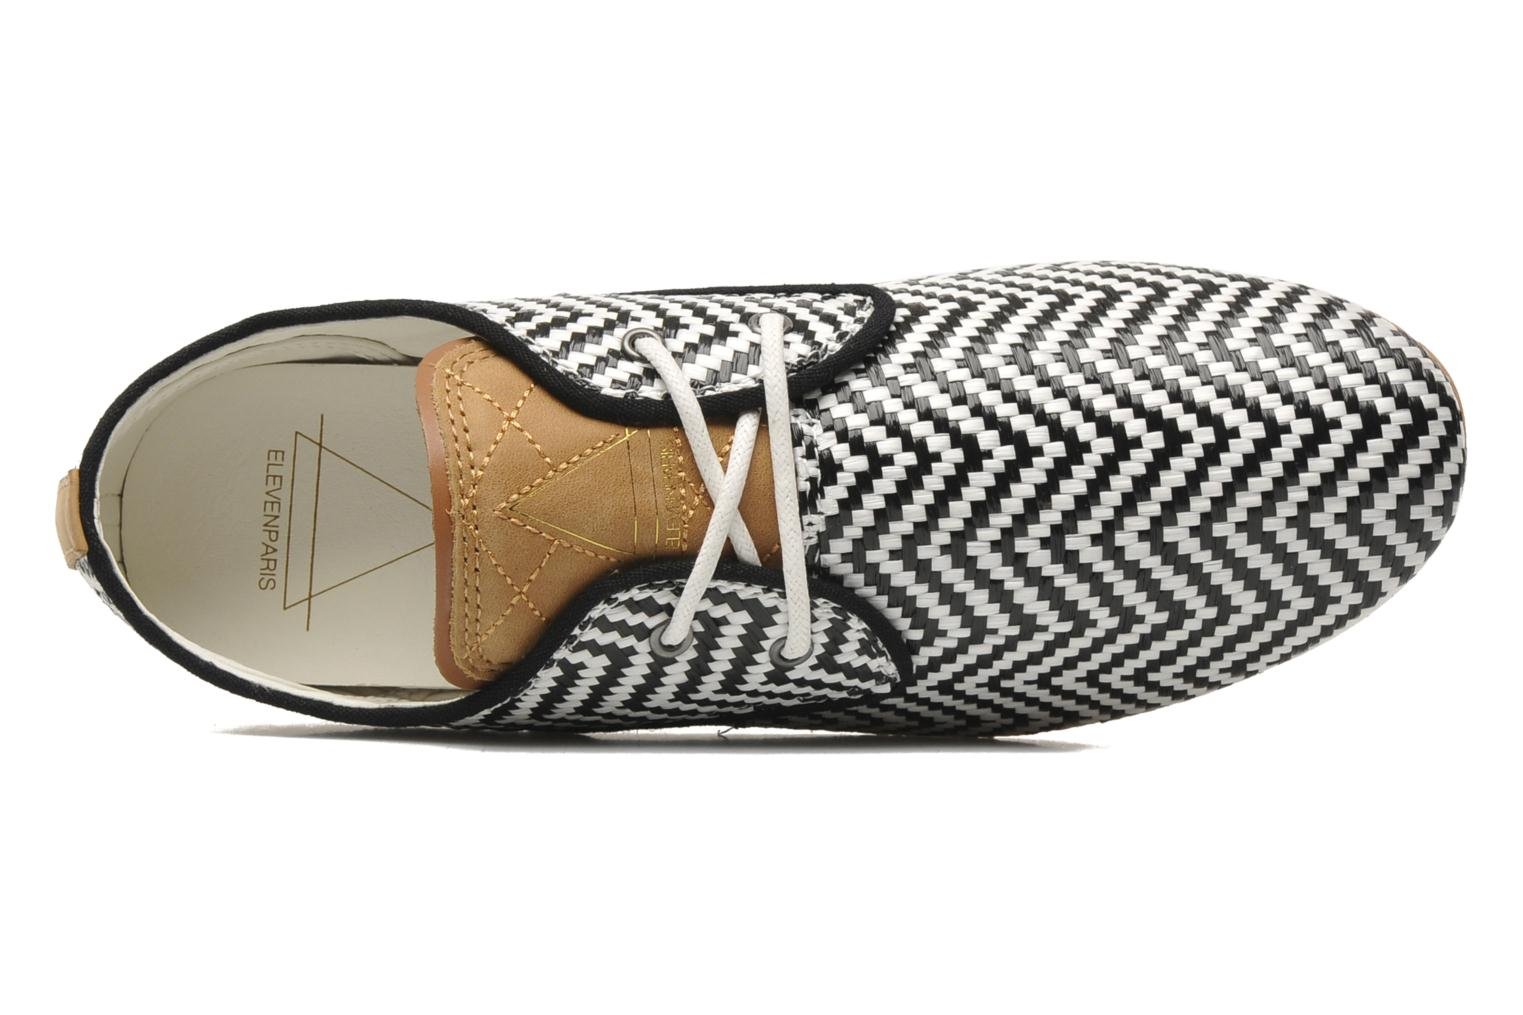 Basic Raffia F Basraf Black & White